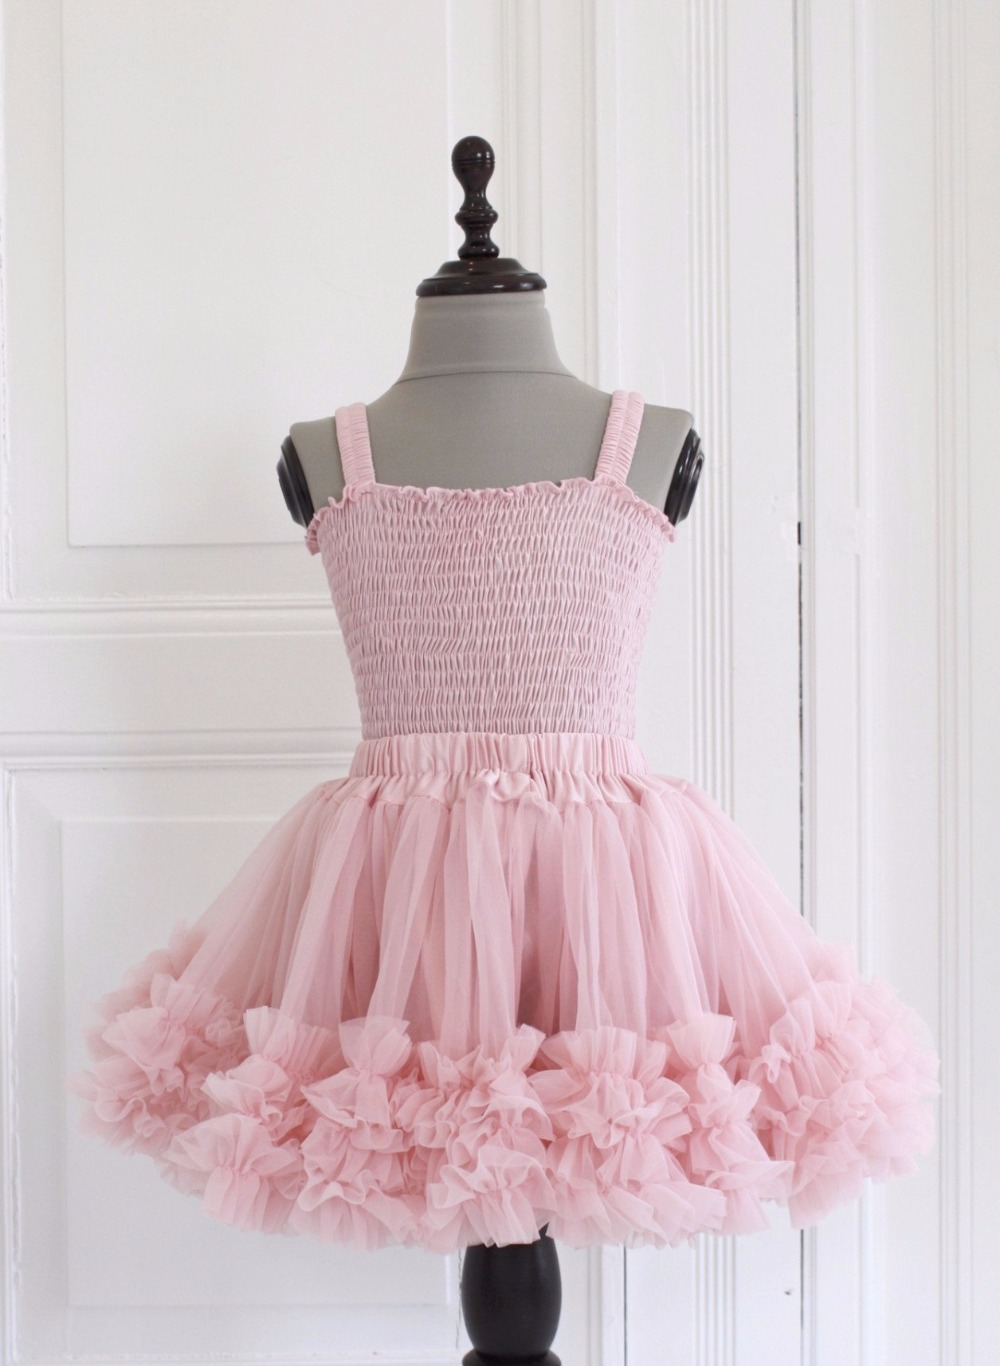 Fashion kids girls Tutu Skirts Chiffon ruffled pettiskirt Baby